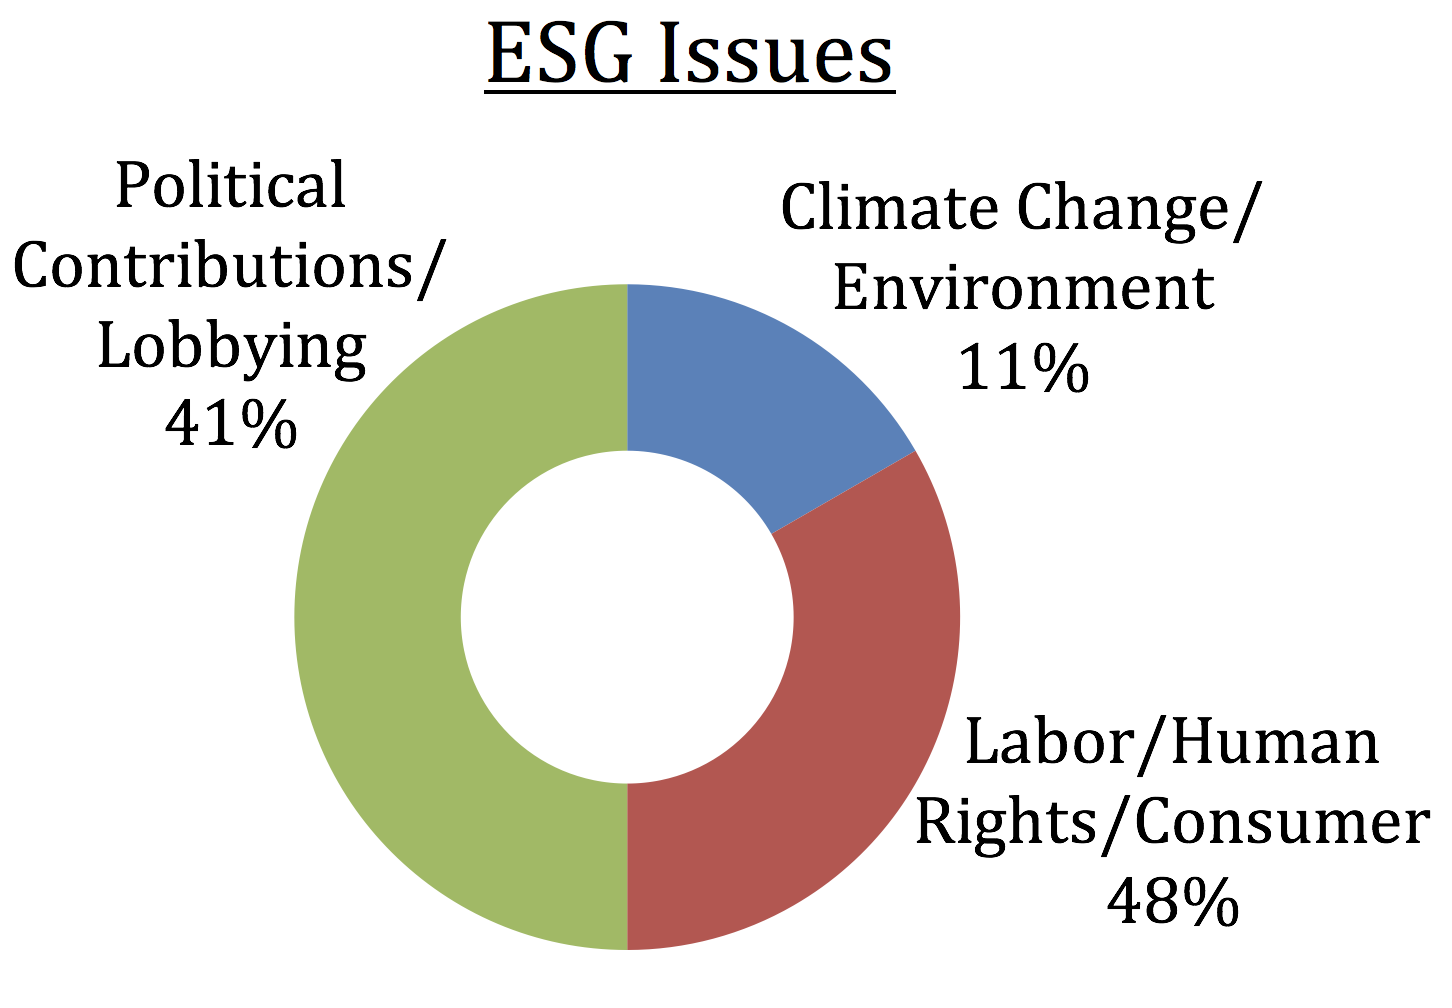 What the college is doing investment amherst college pie chart of esg issues with full text in caption below image nvjuhfo Image collections